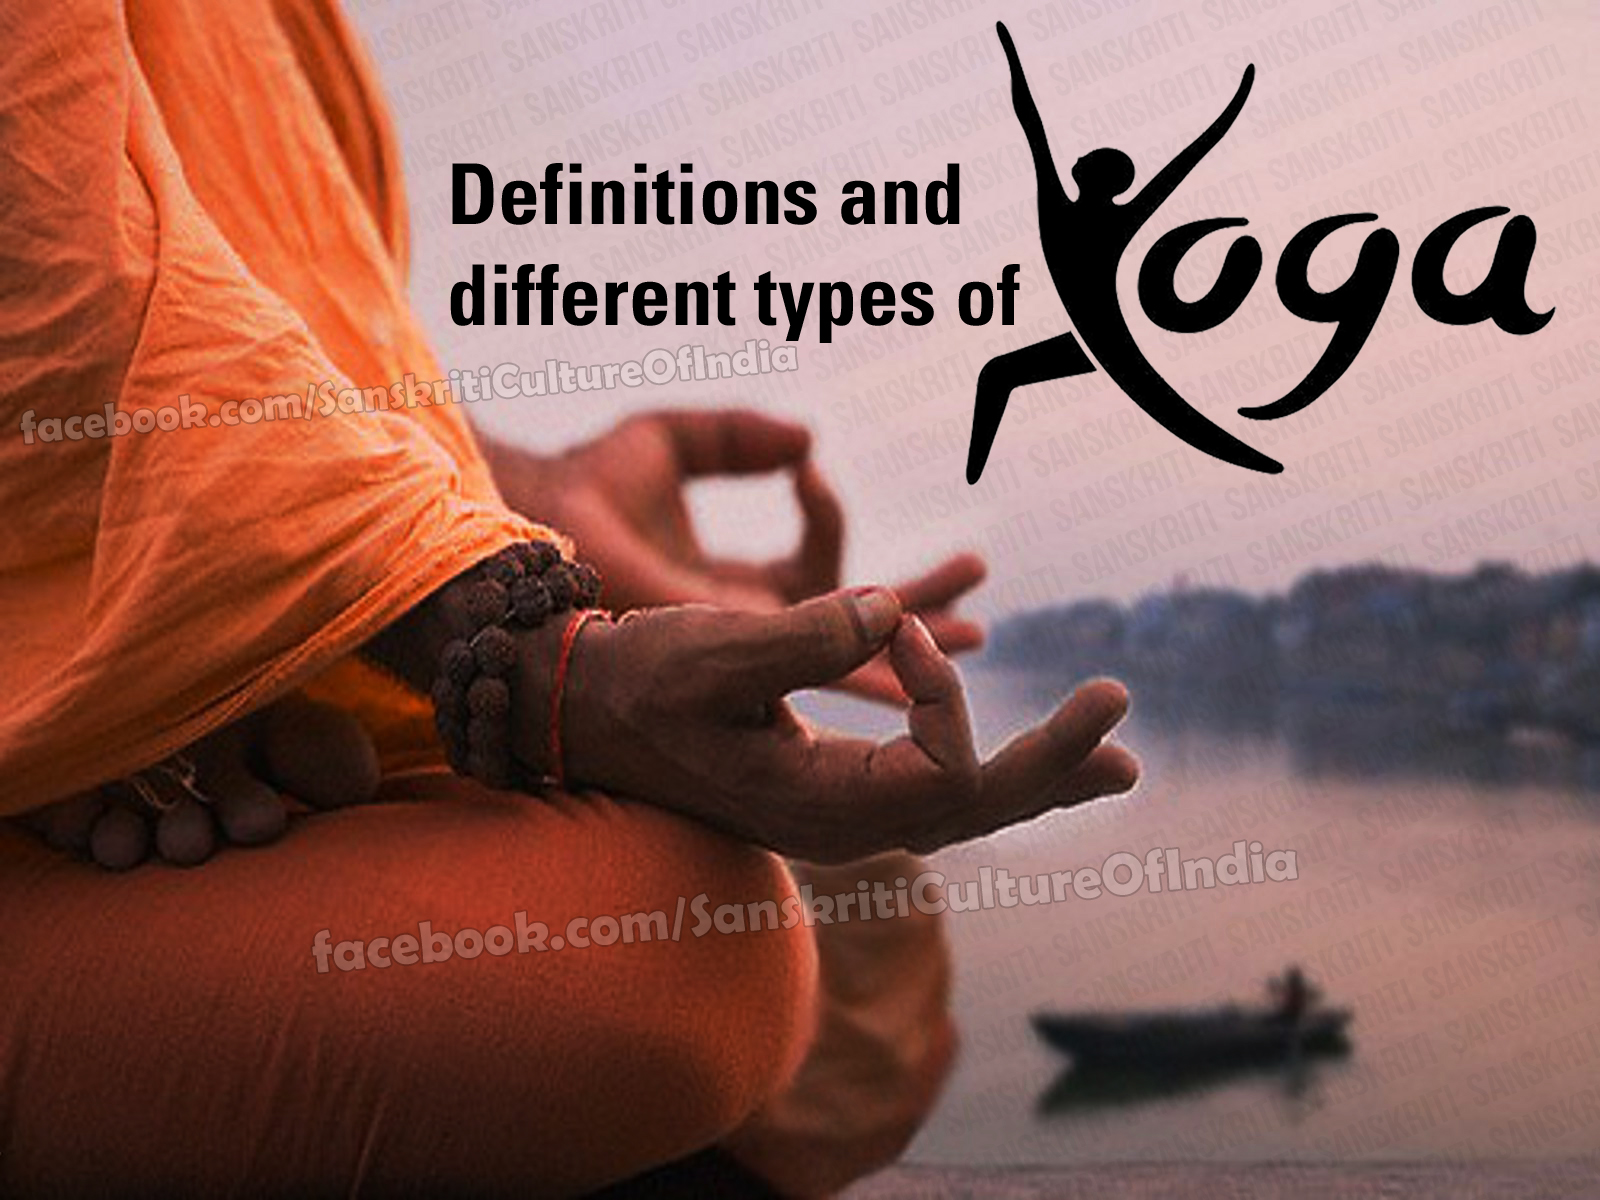 definition of yoga